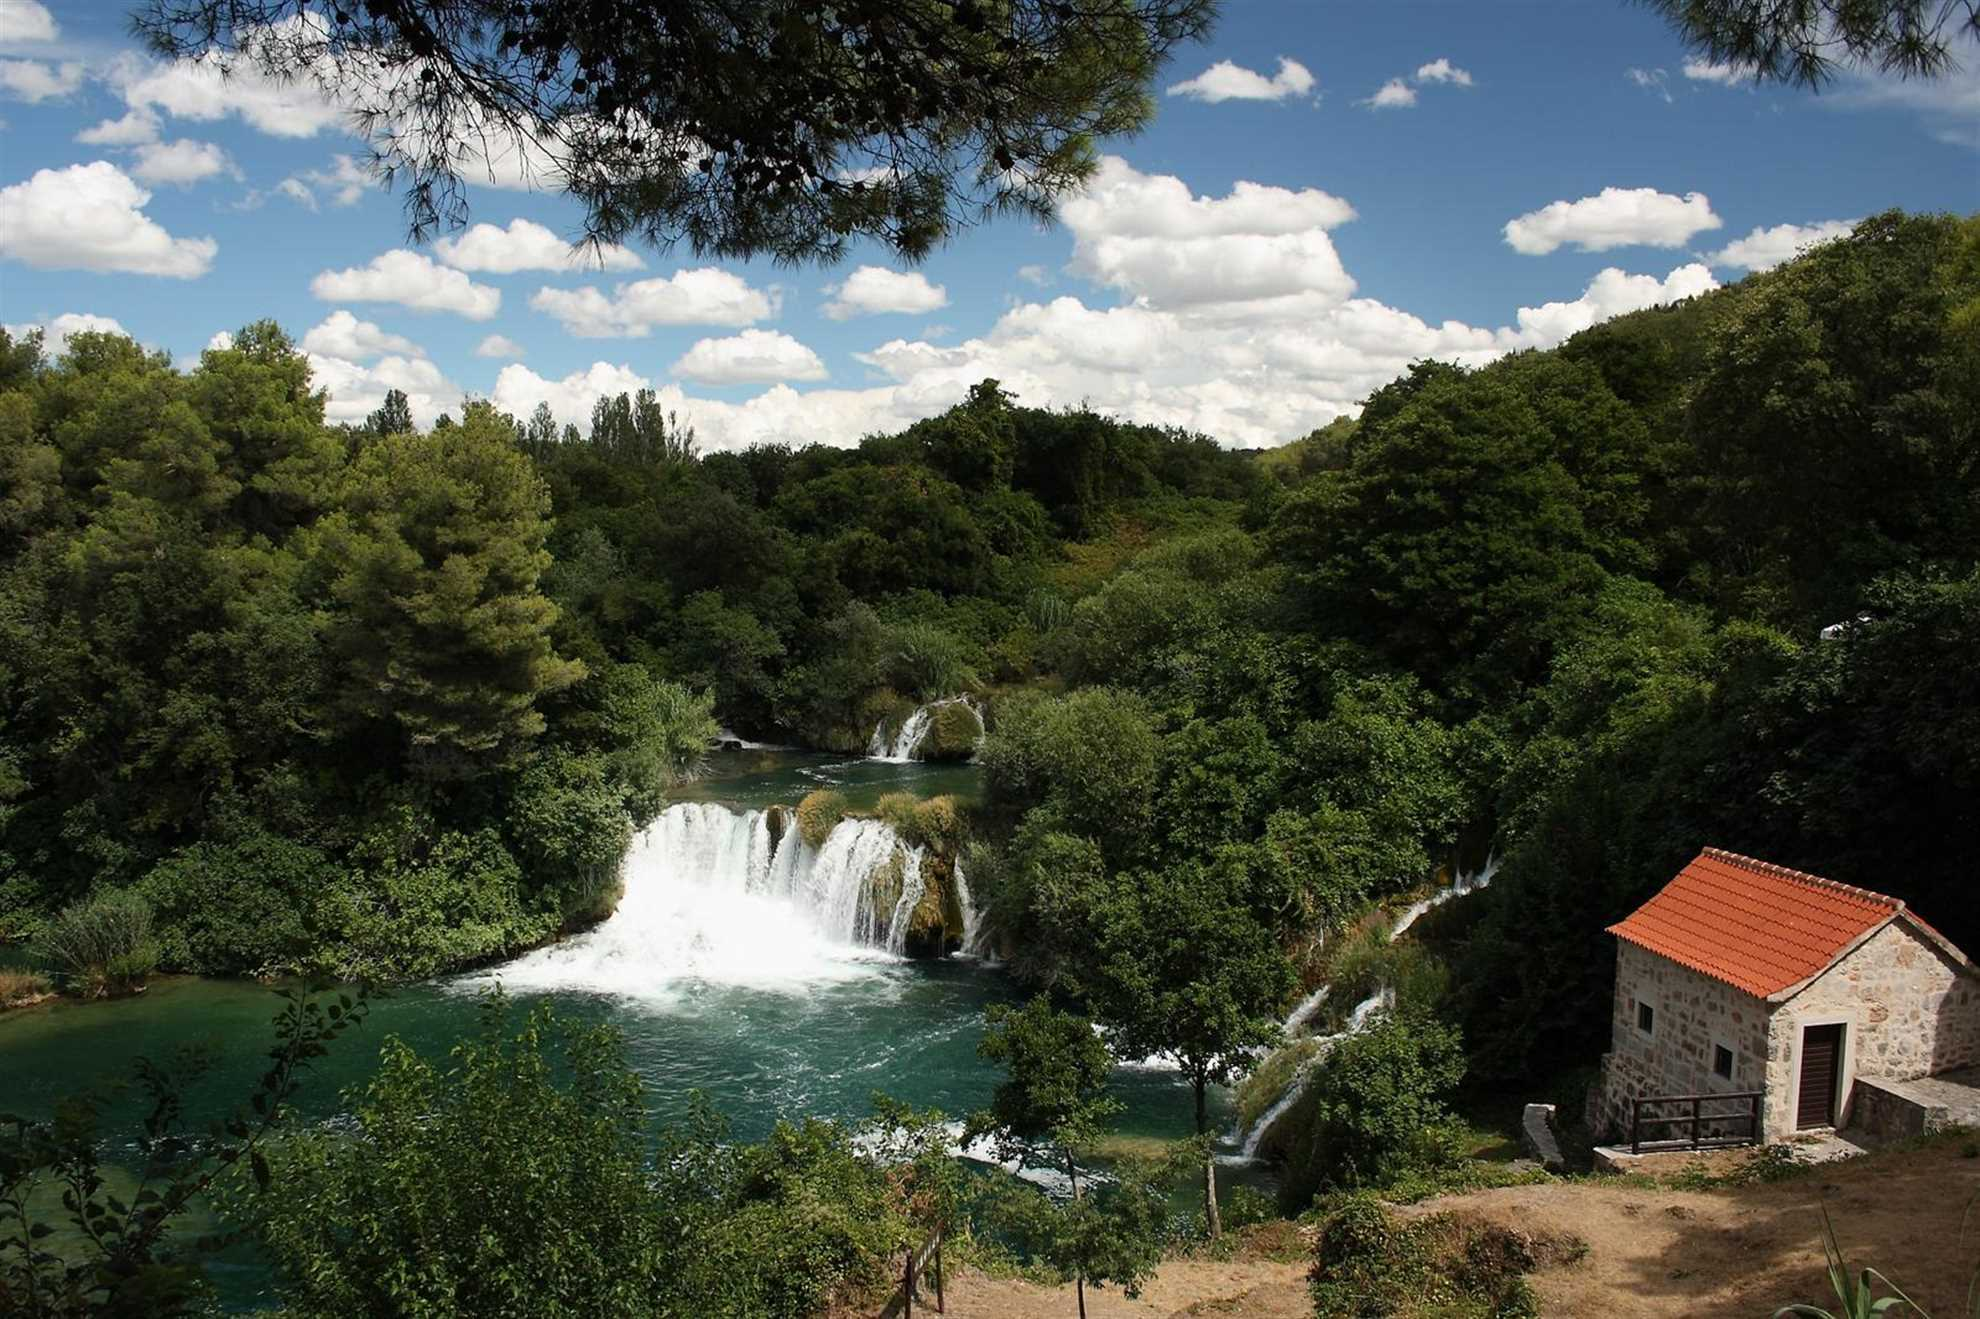 Krka Waterfalls, National Park in Central Dalmatia, Croatia